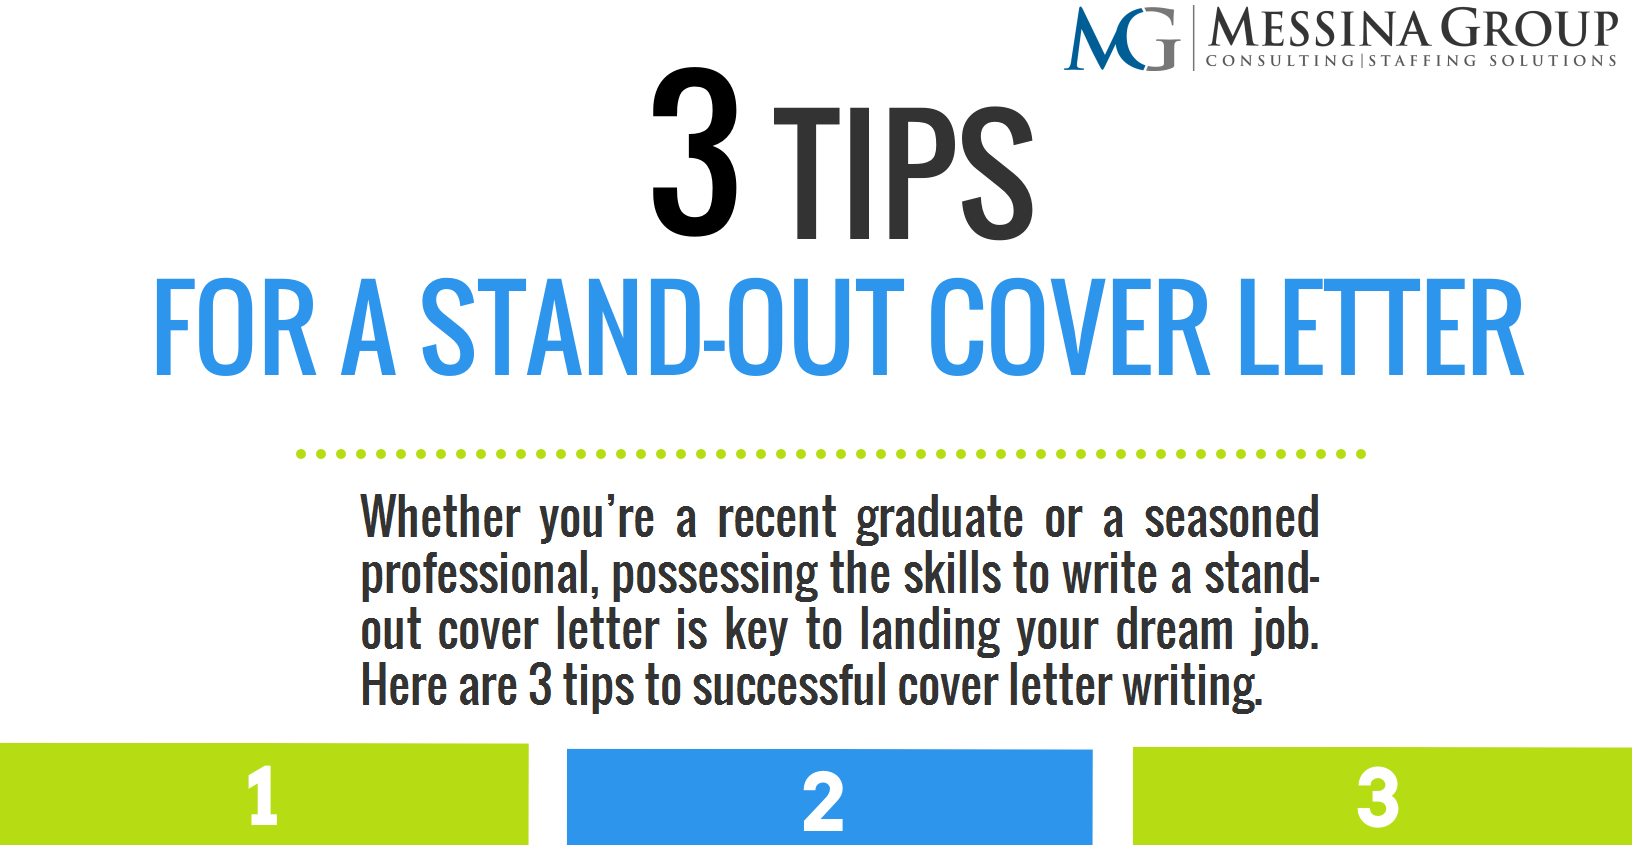 general cover letter tips ulm university of louisiana at cover letter examples writing tips the best resume and cover letter - Tips For Cover Letter Writing